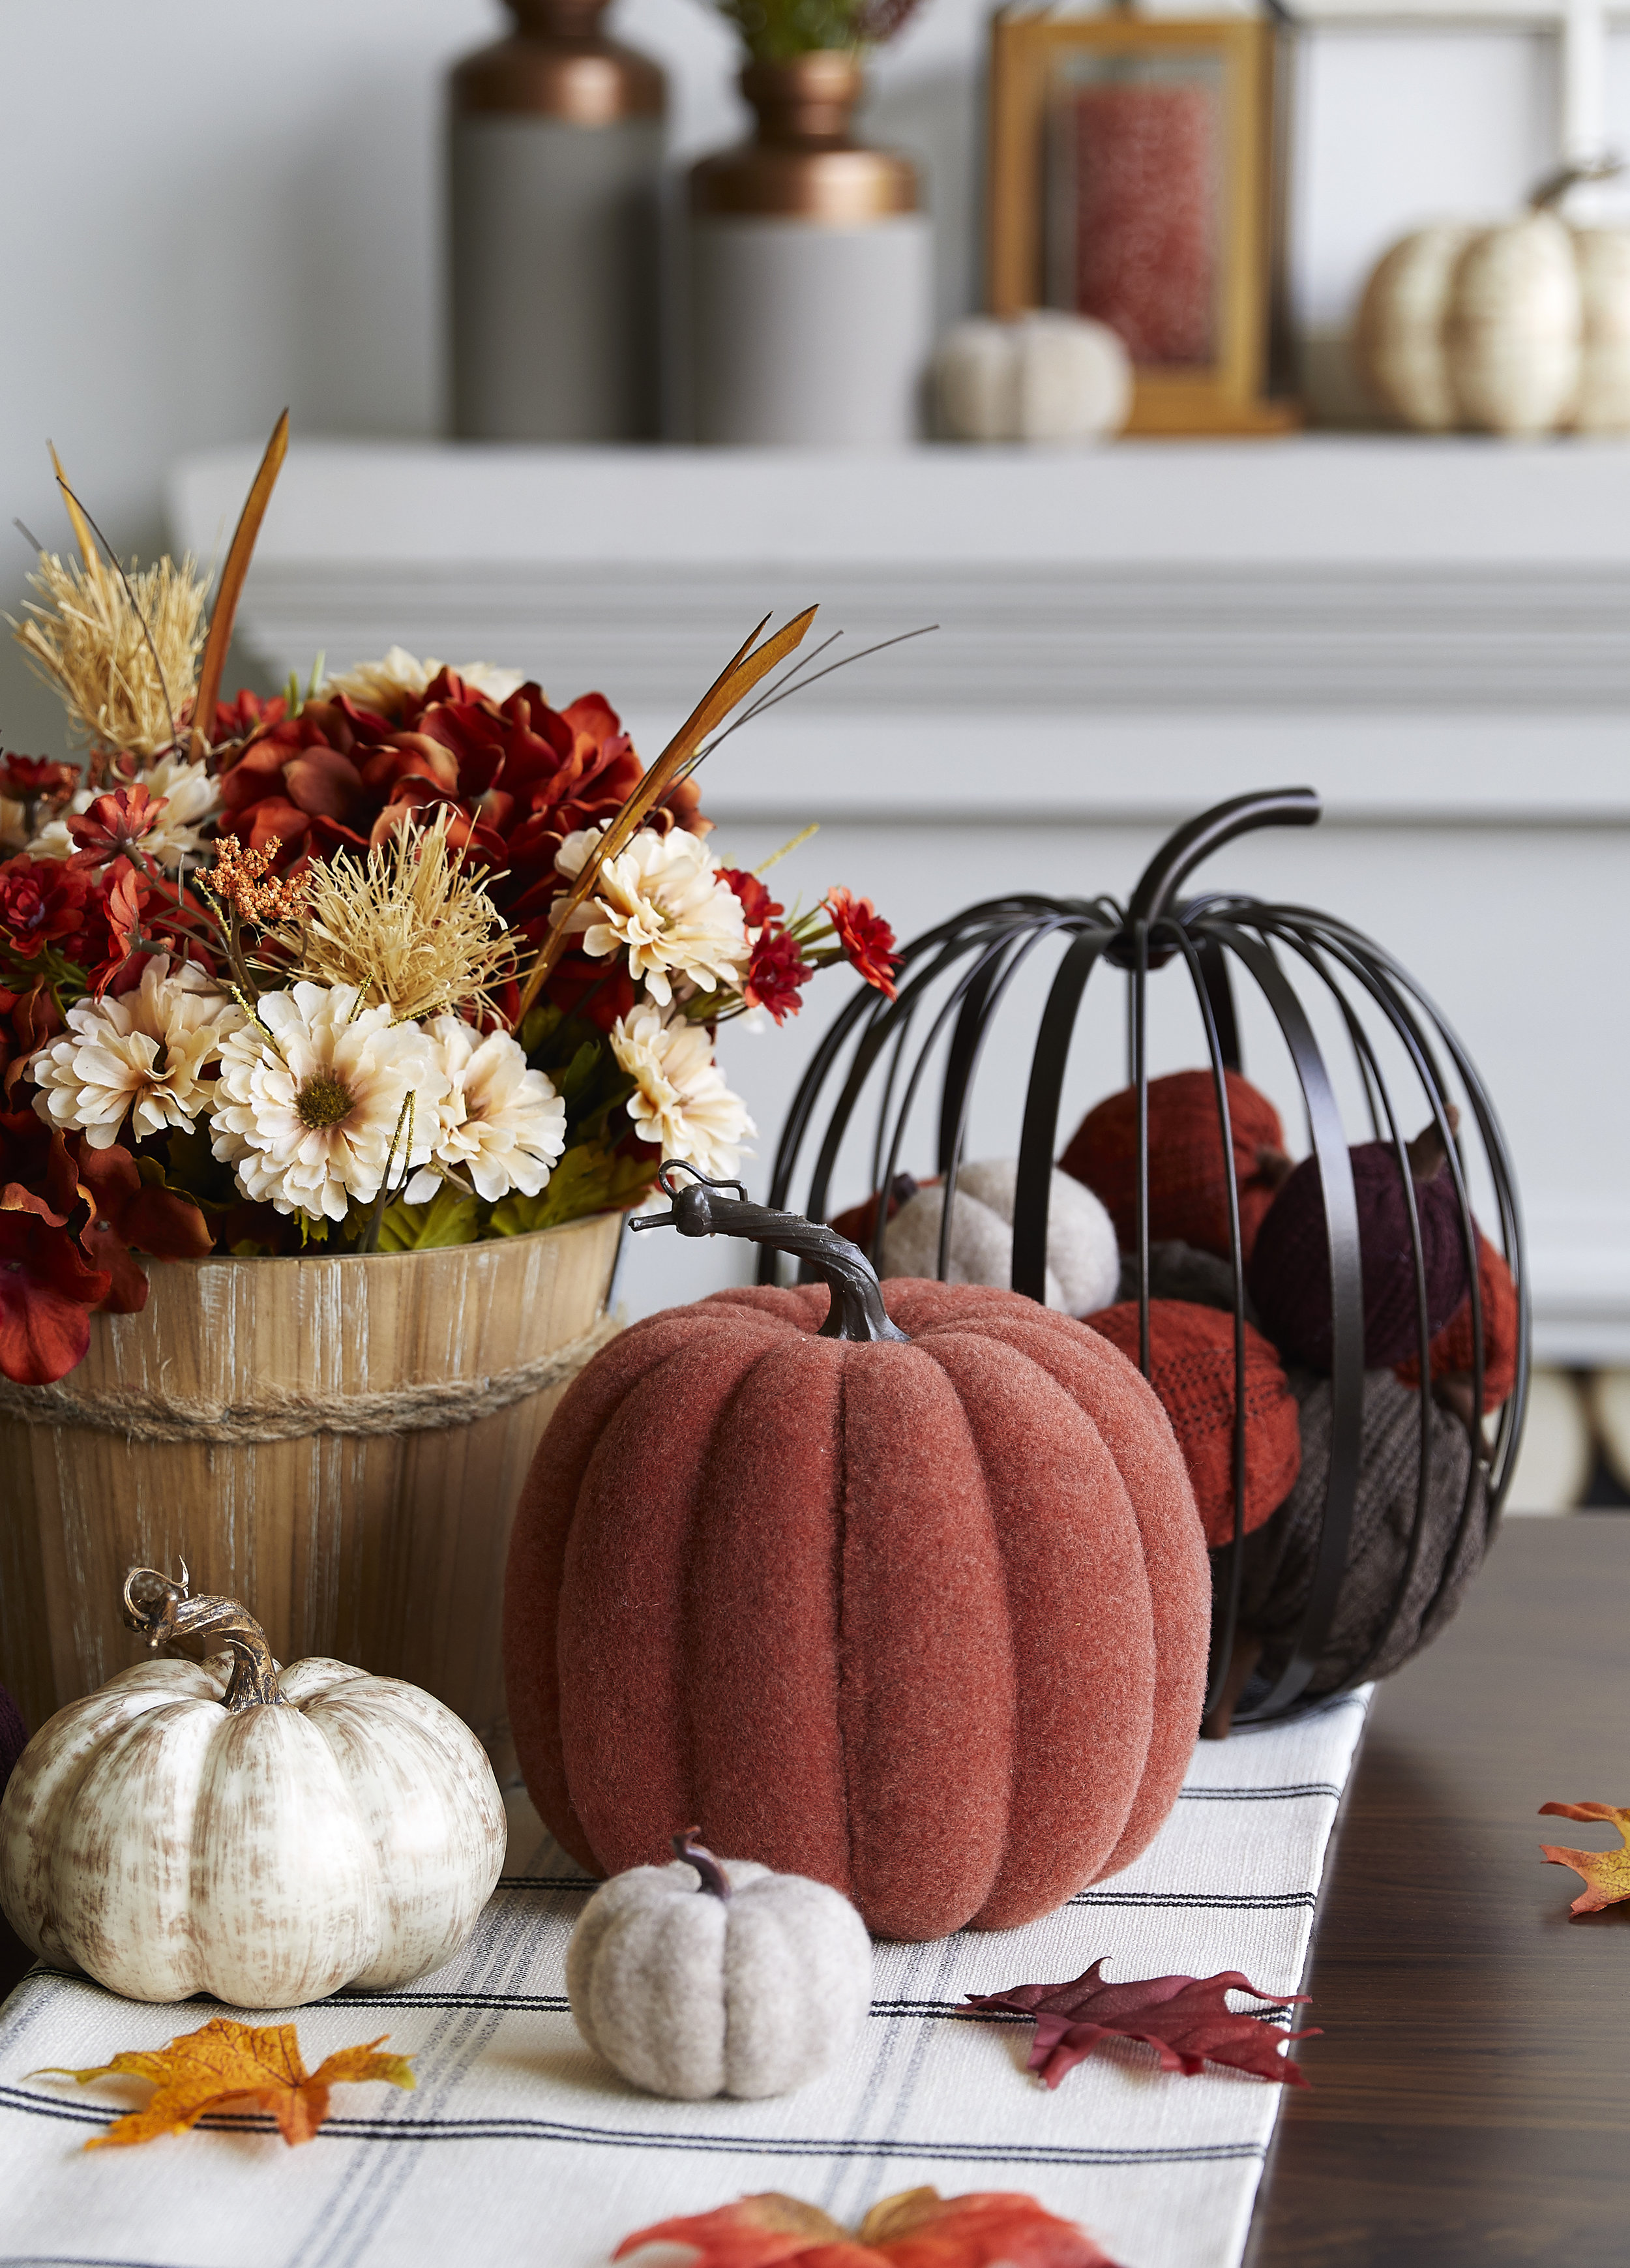 159667740A_229-14233_Tablescape_01_crop.jpg